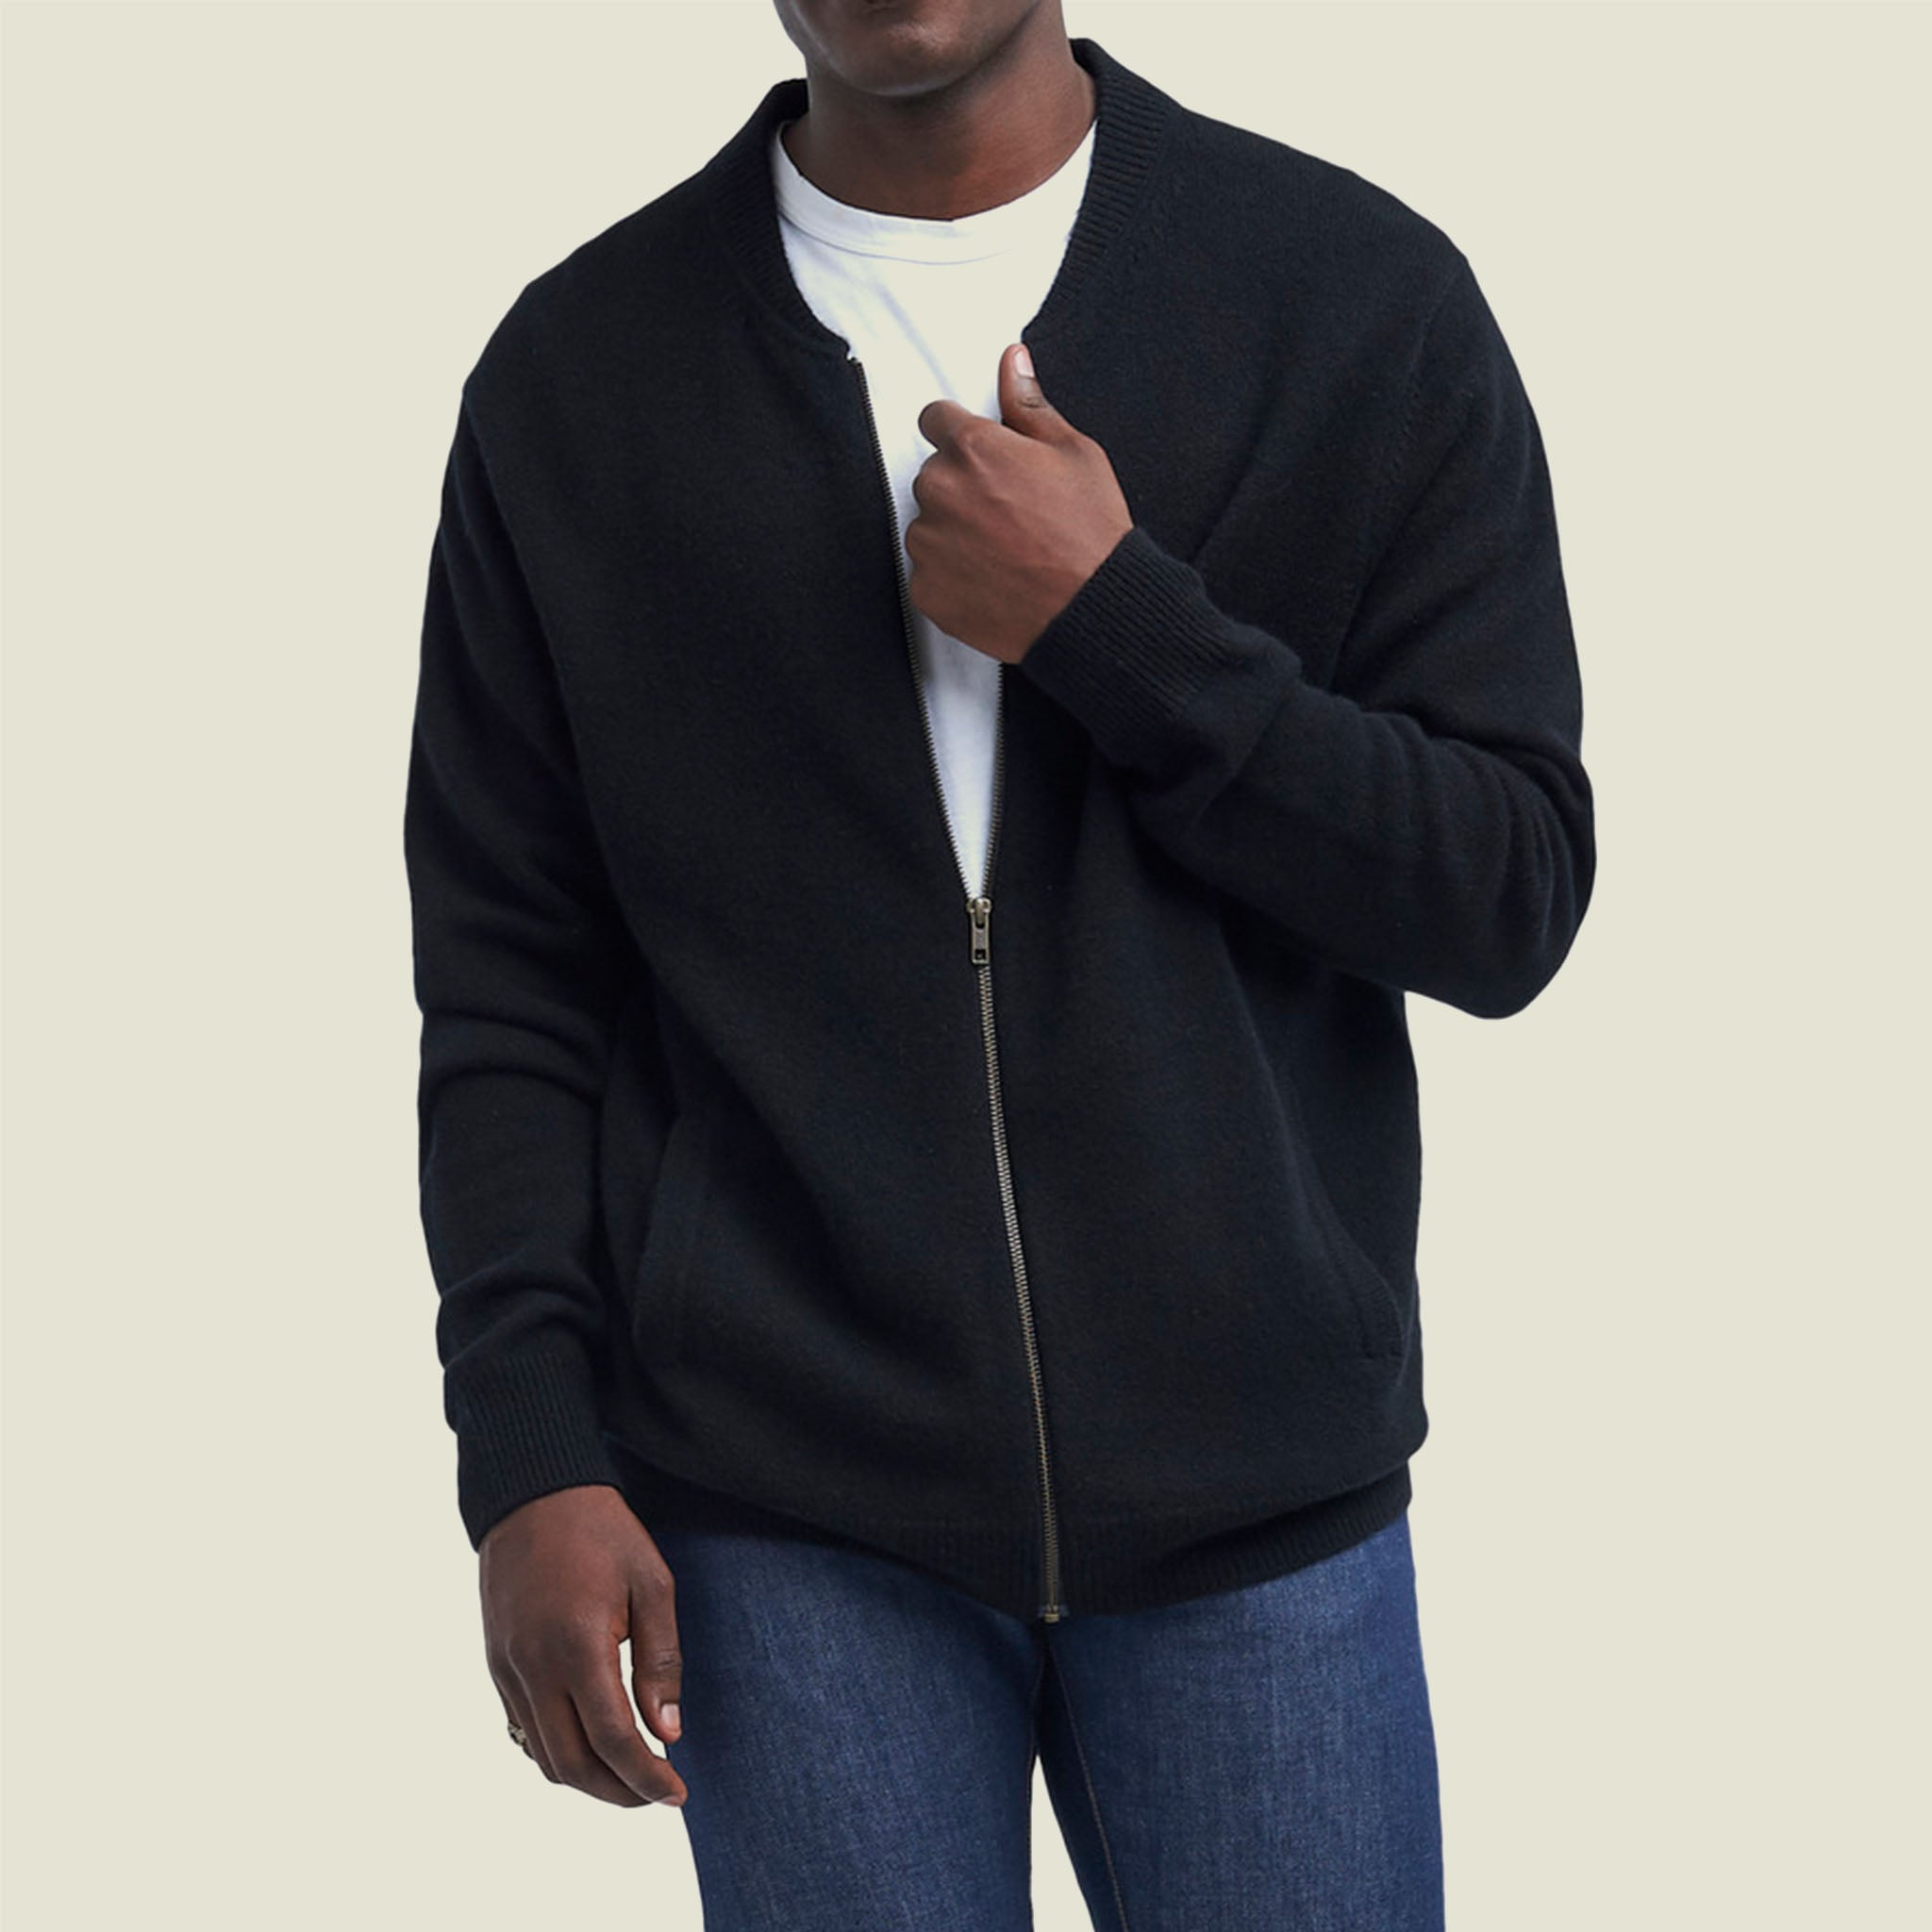 Cashmere Bomber Jacket - Blackbird General Store